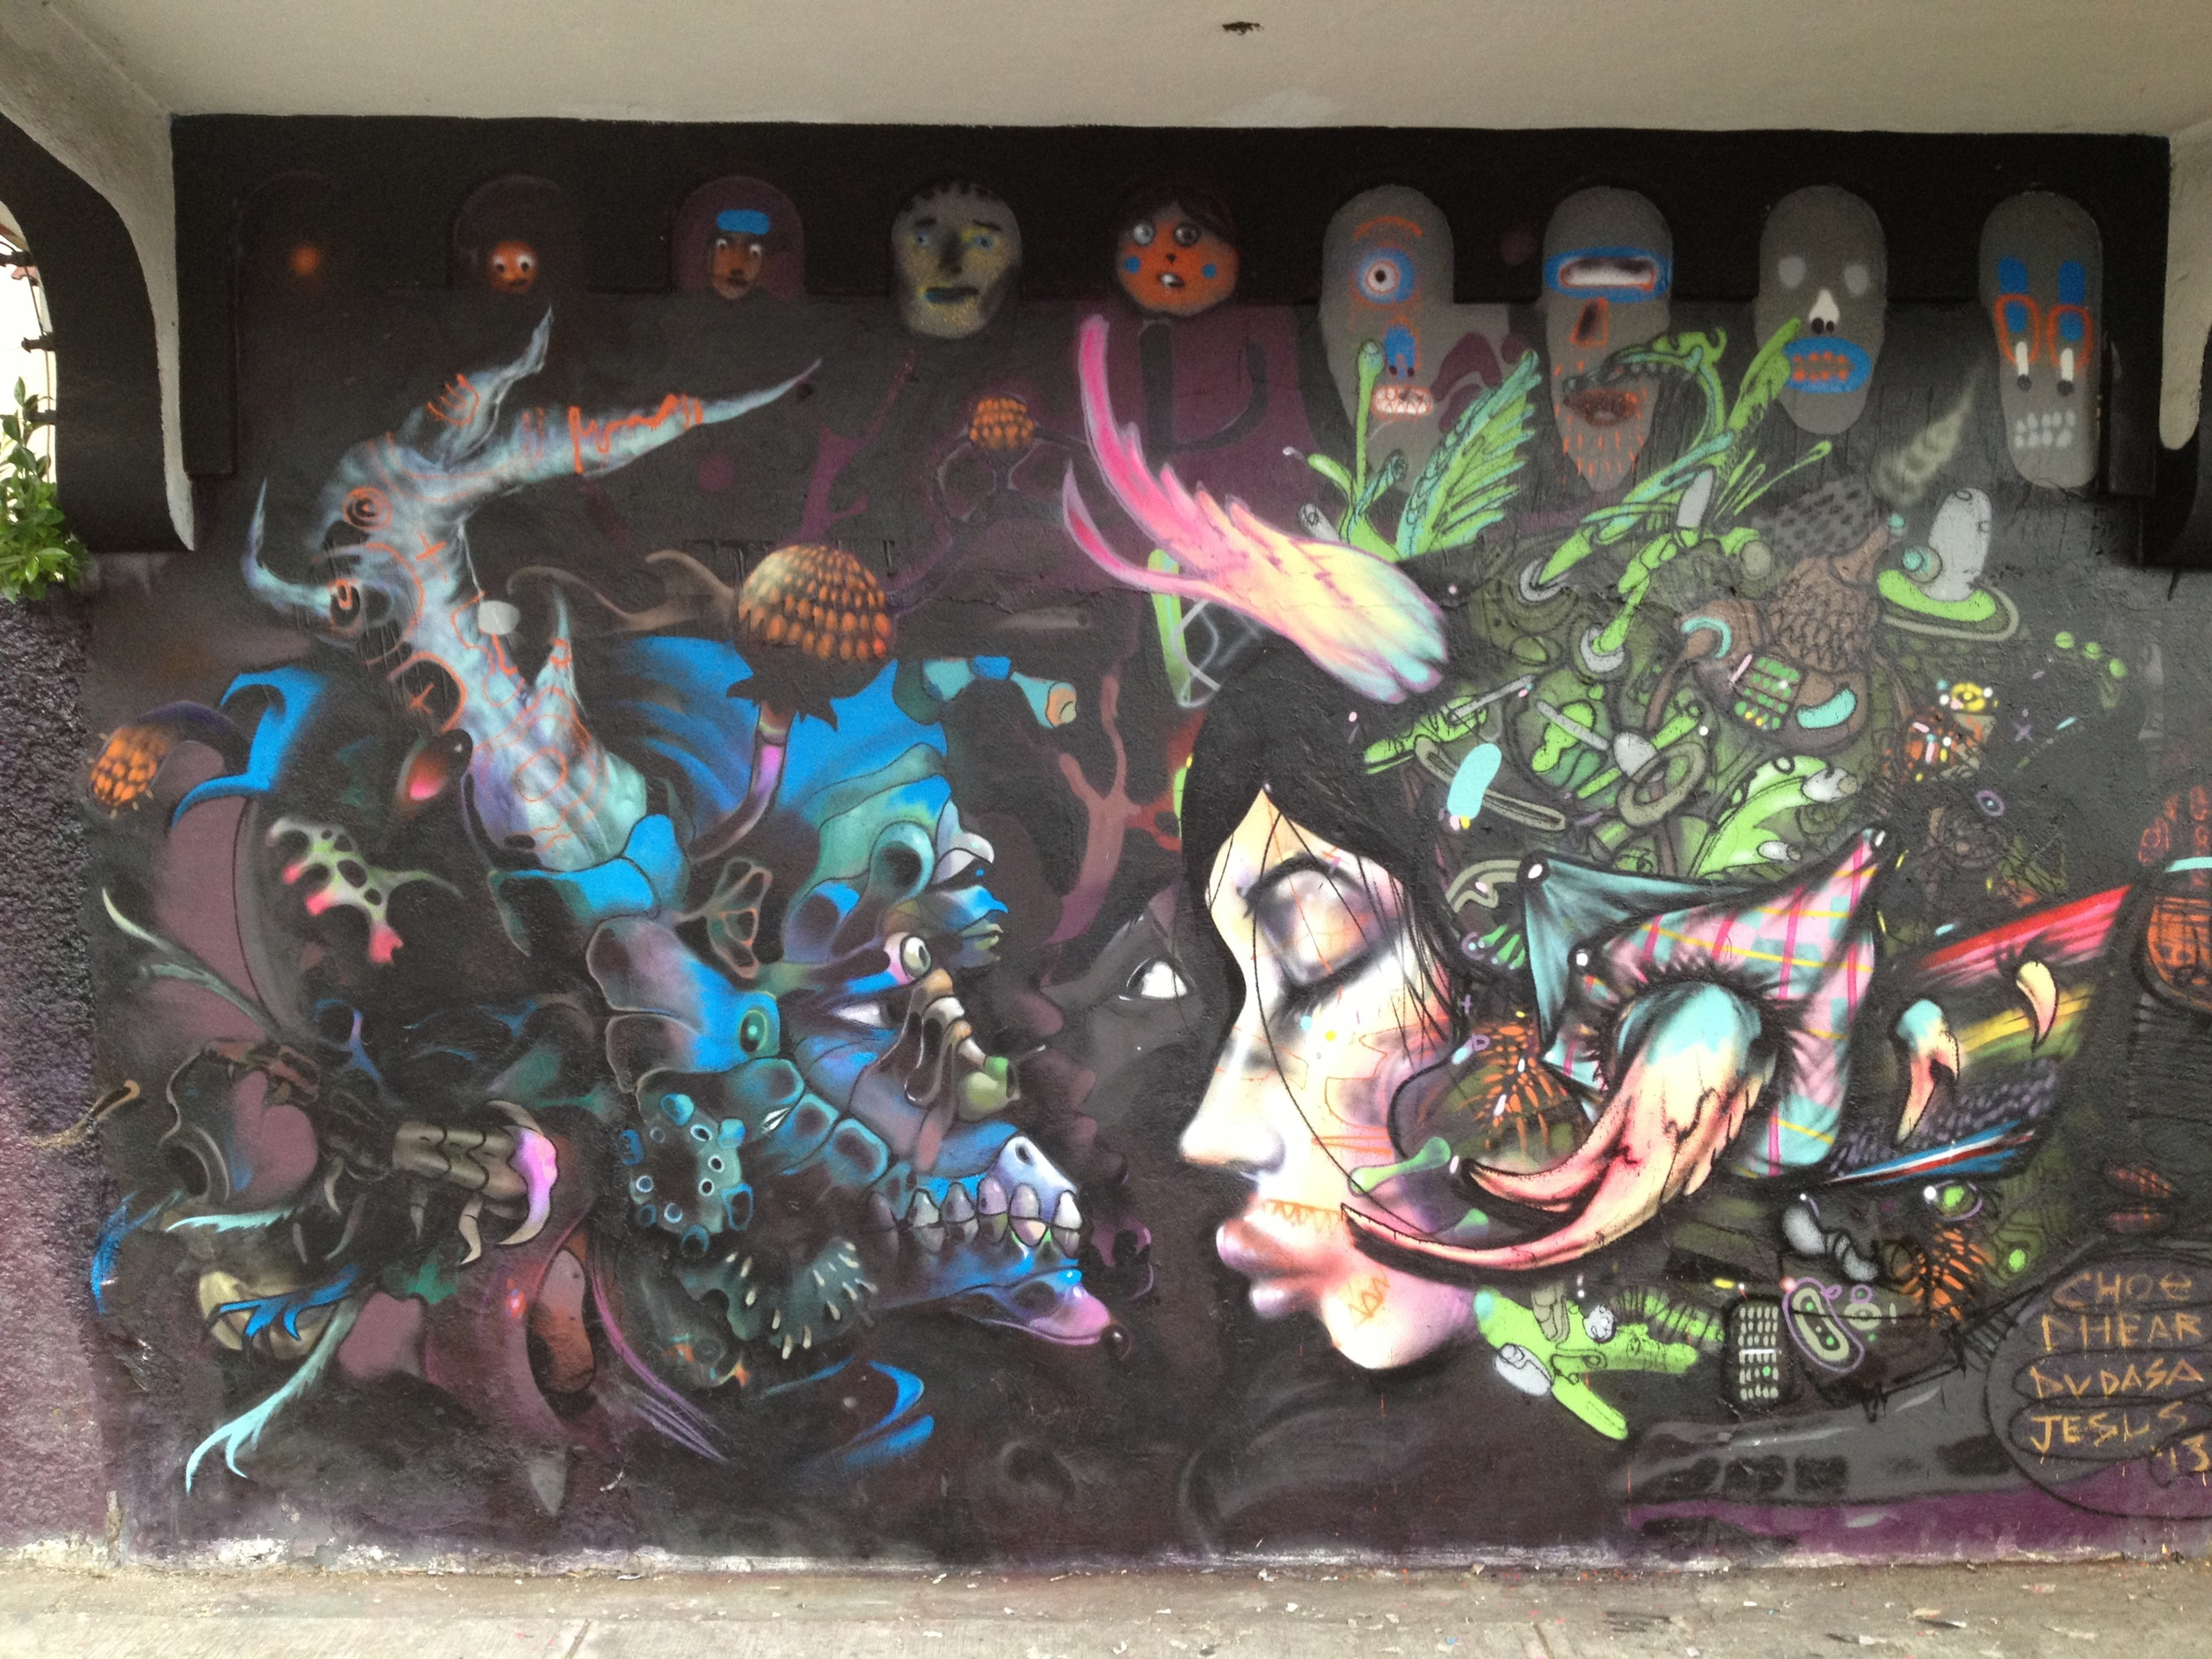 David-Choe-and-Dhear-Mural-in-Mexico-City-01